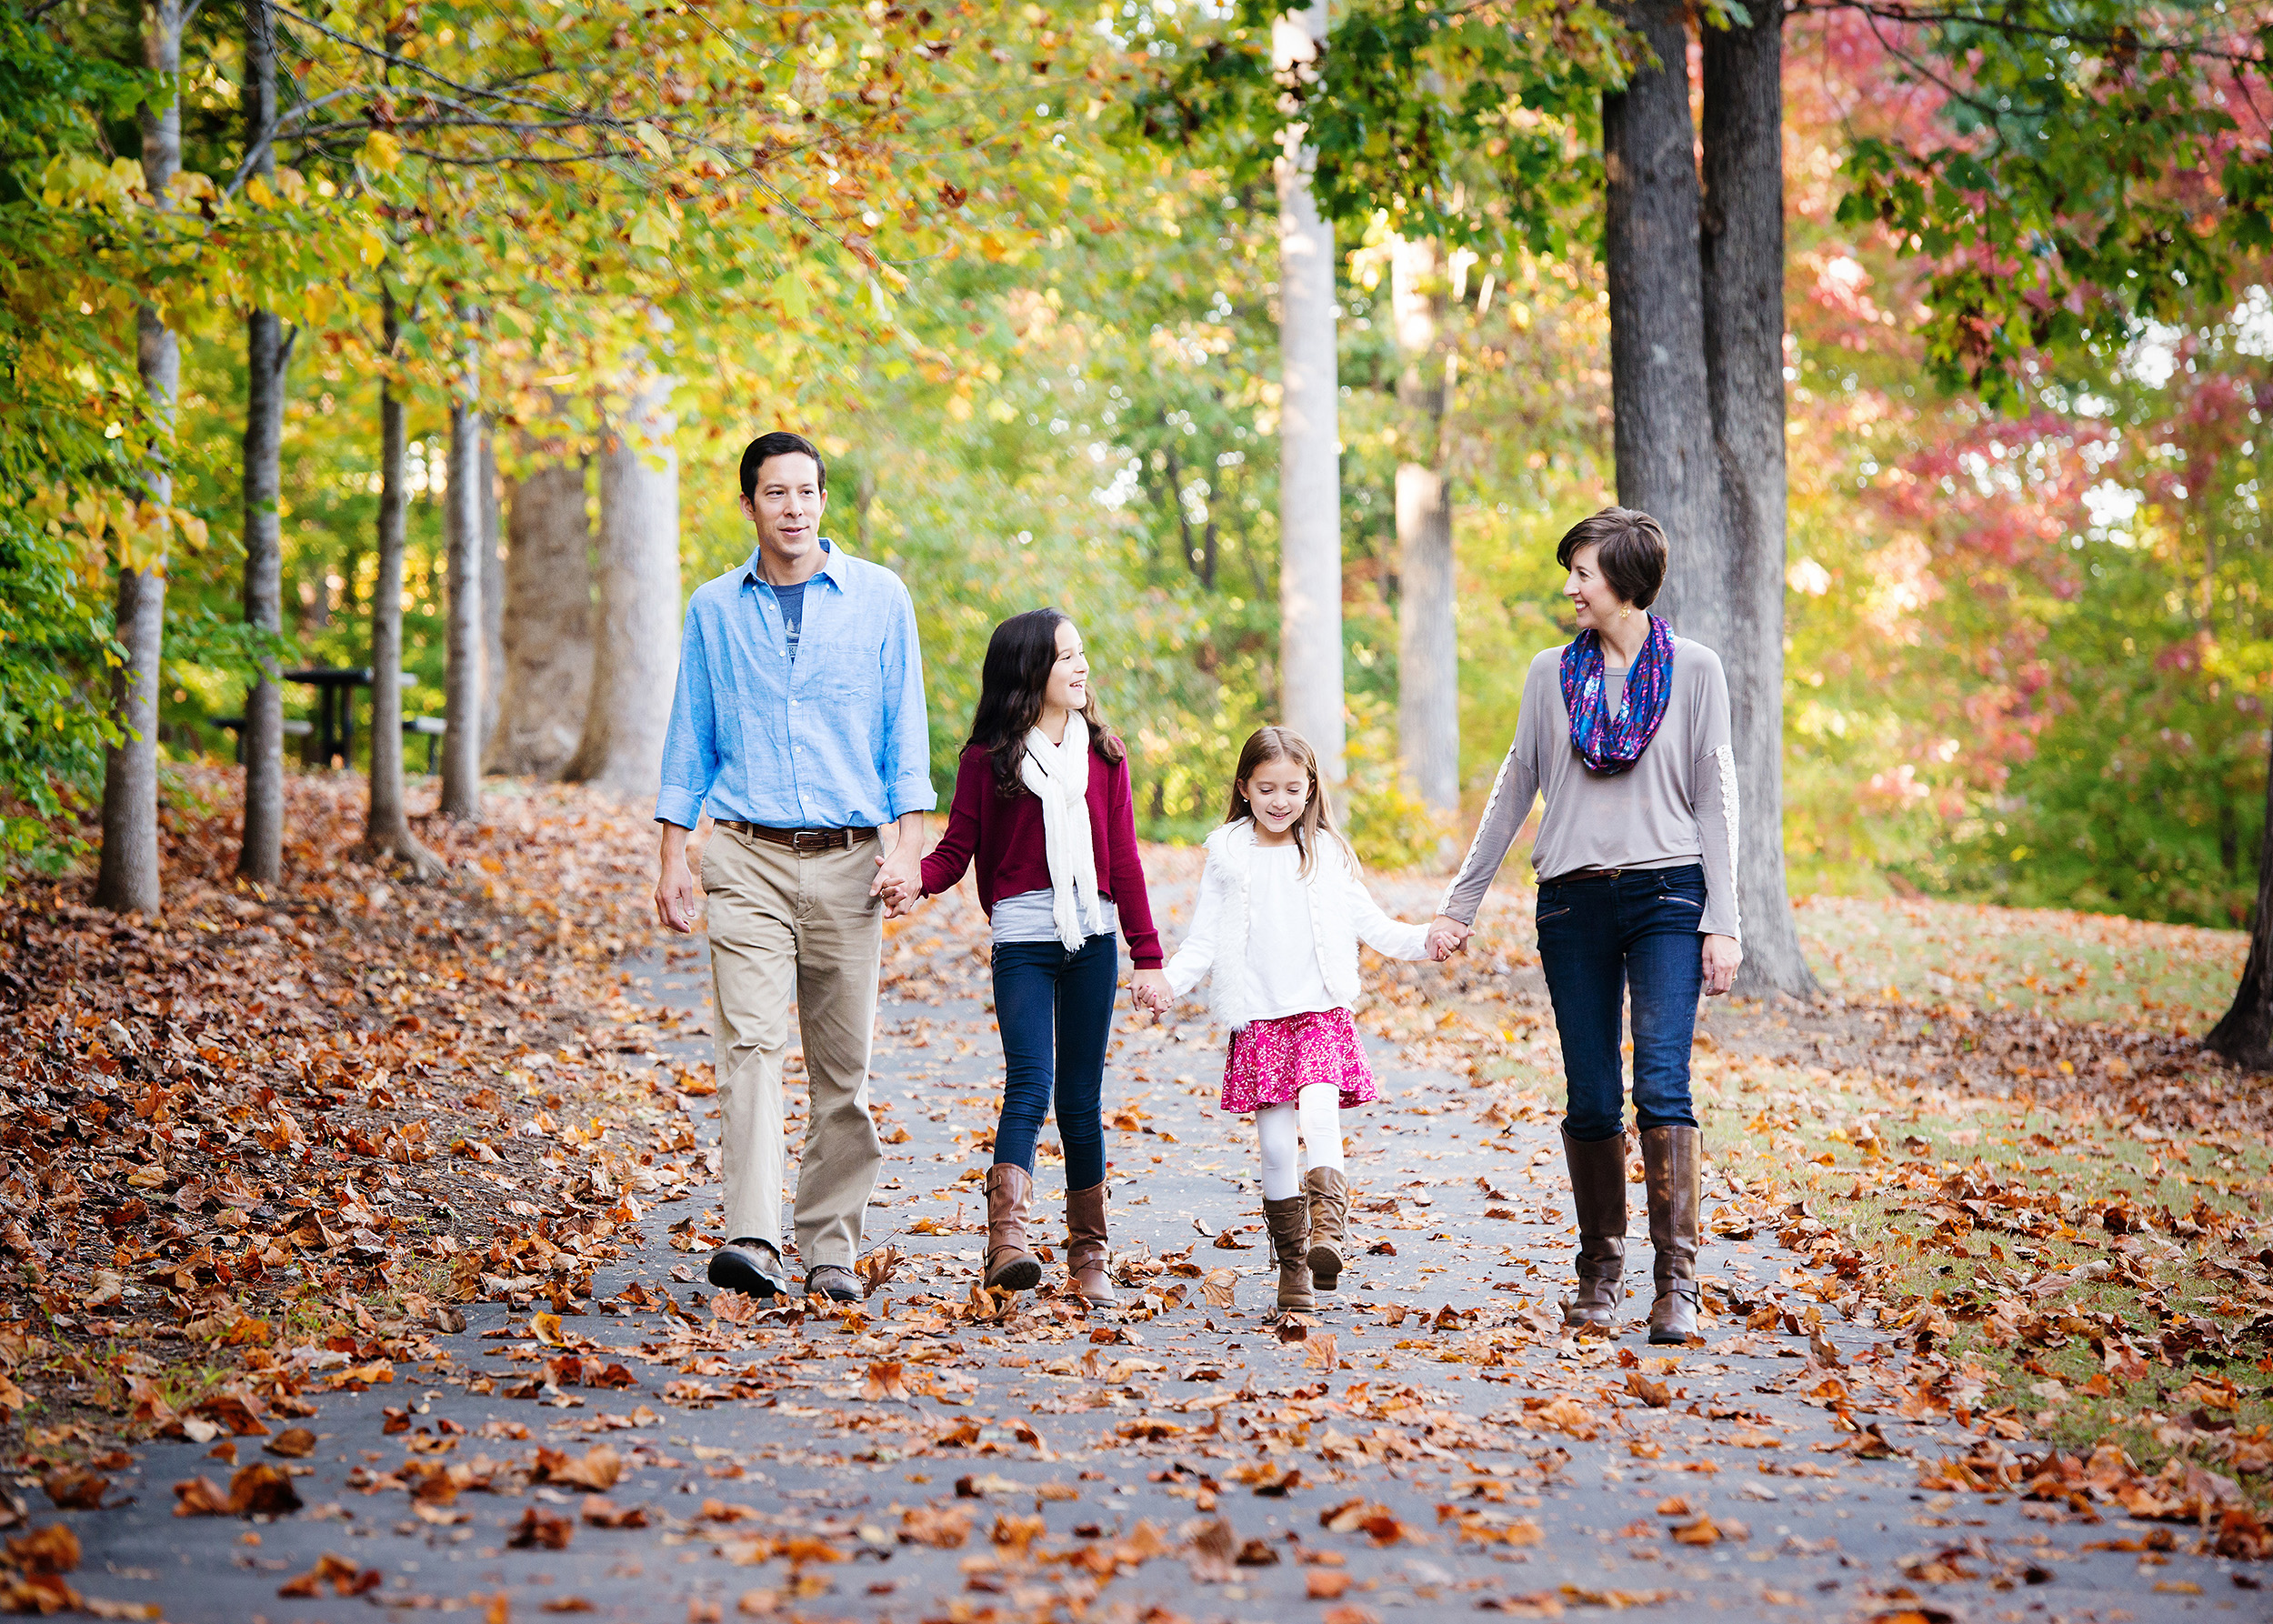 fall-family-photography-sessions-cary-12.jpg